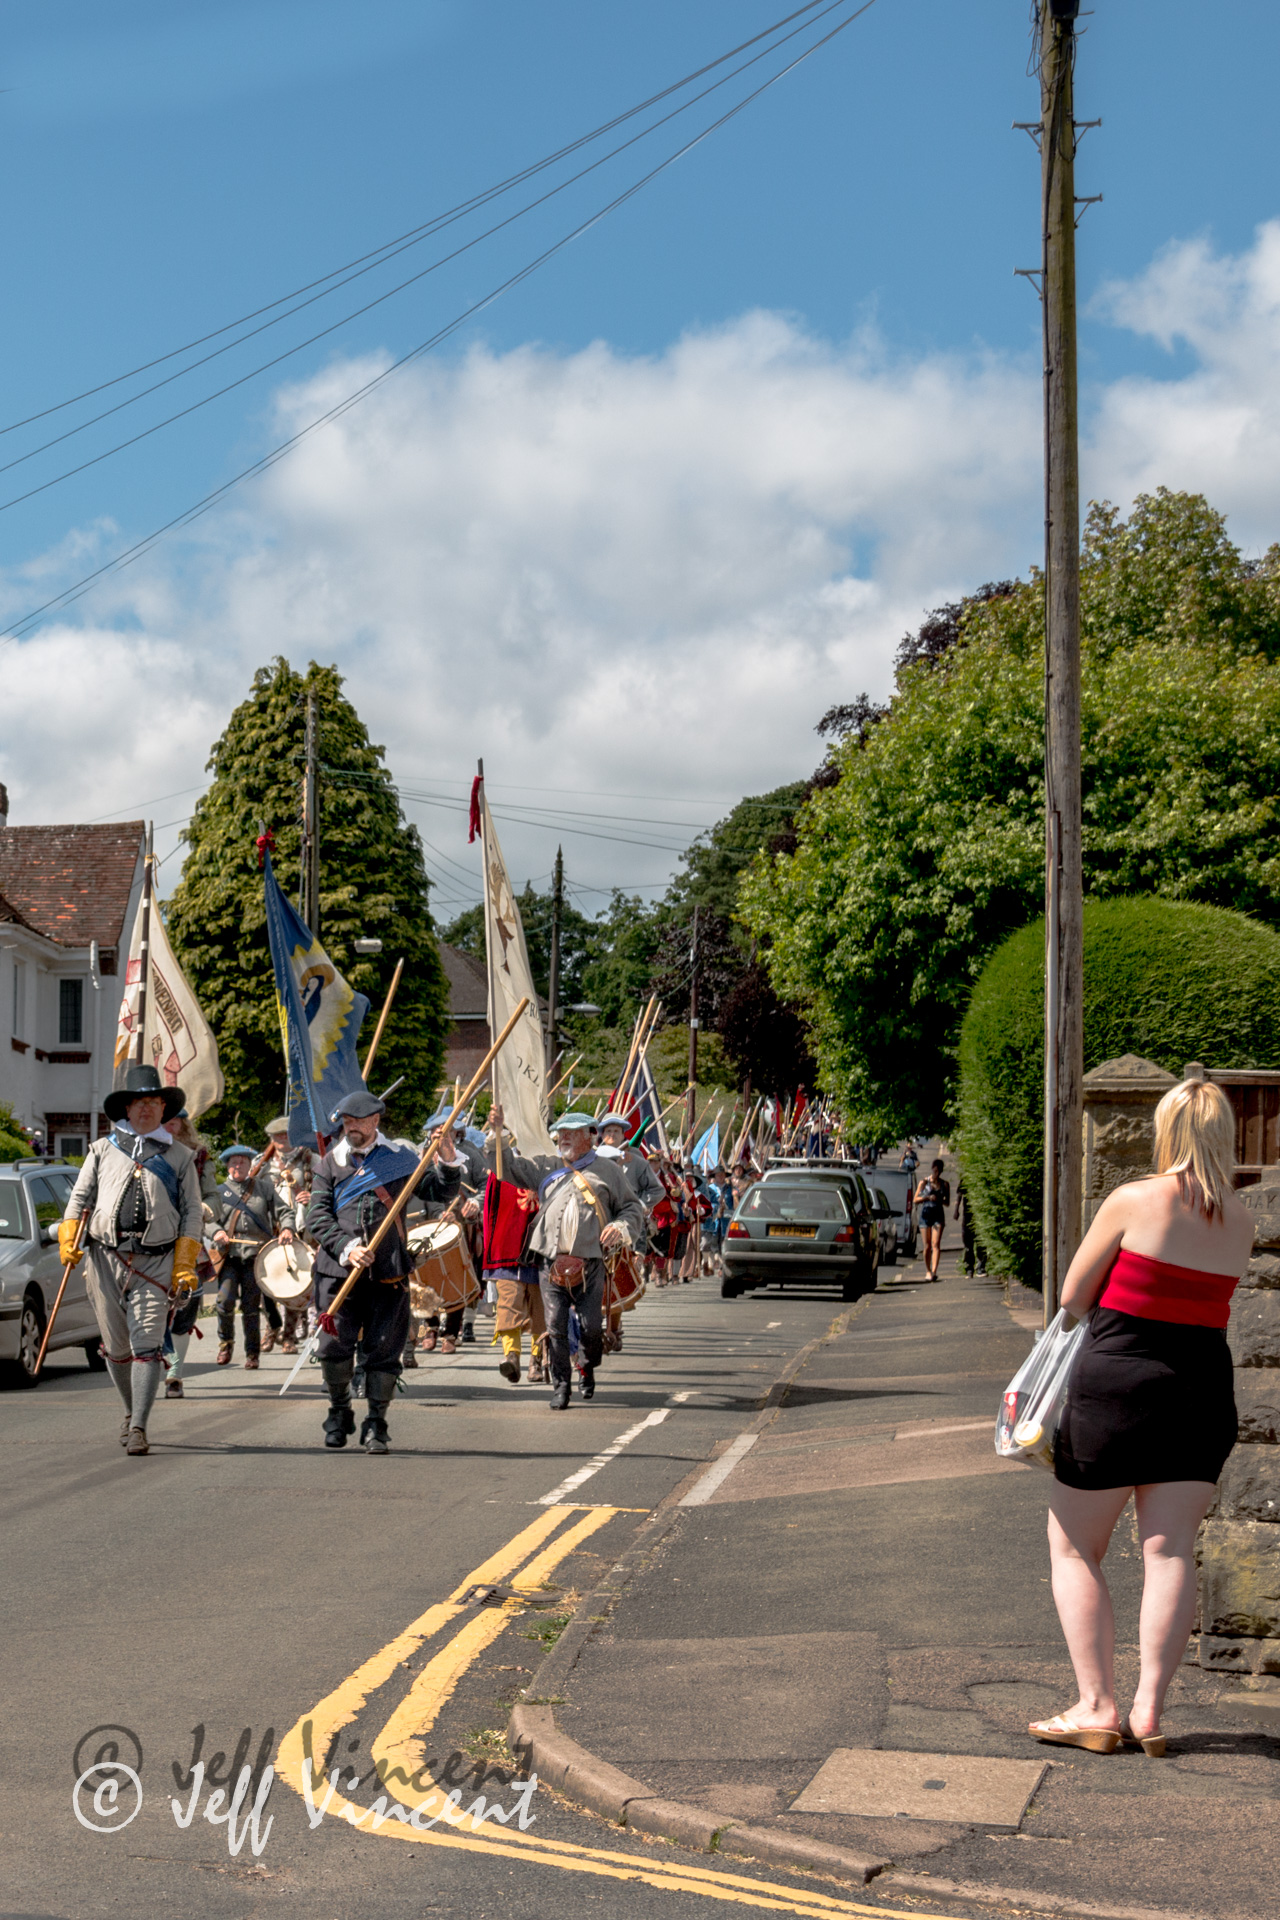 The crowds came to see the parade